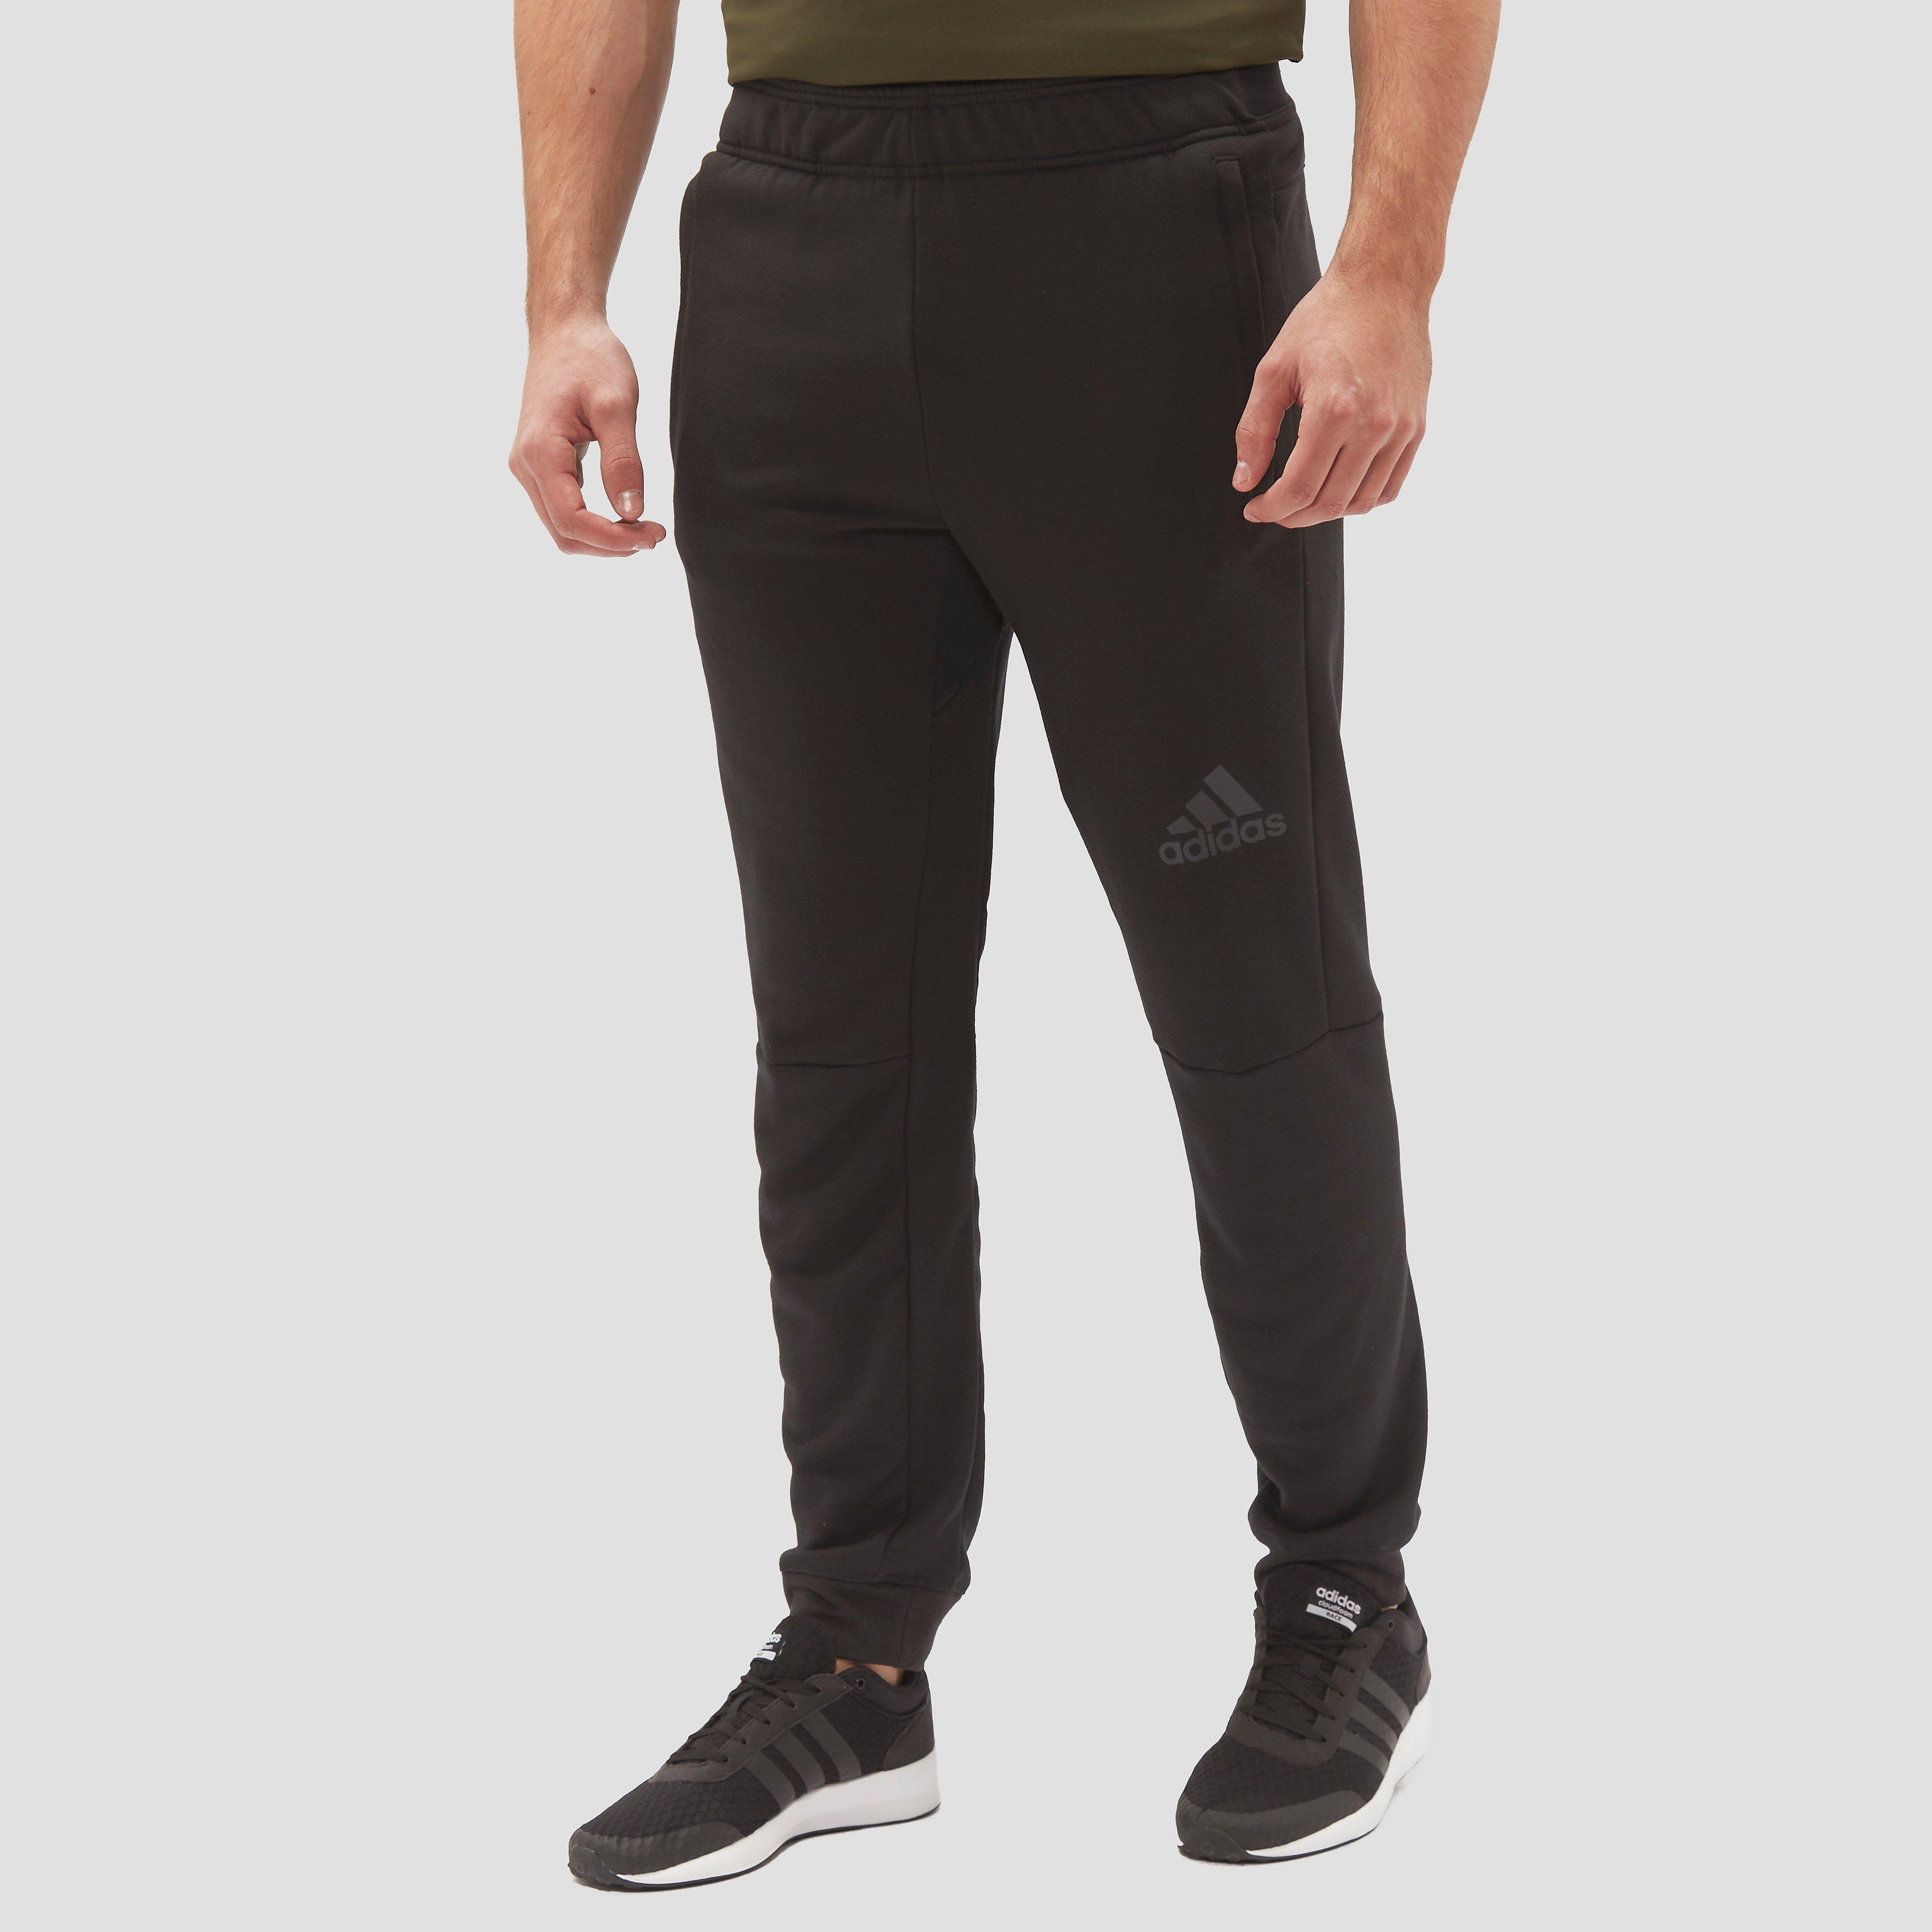 ADIDAS WORKOUT SPORTBROEK ZWART HEREN